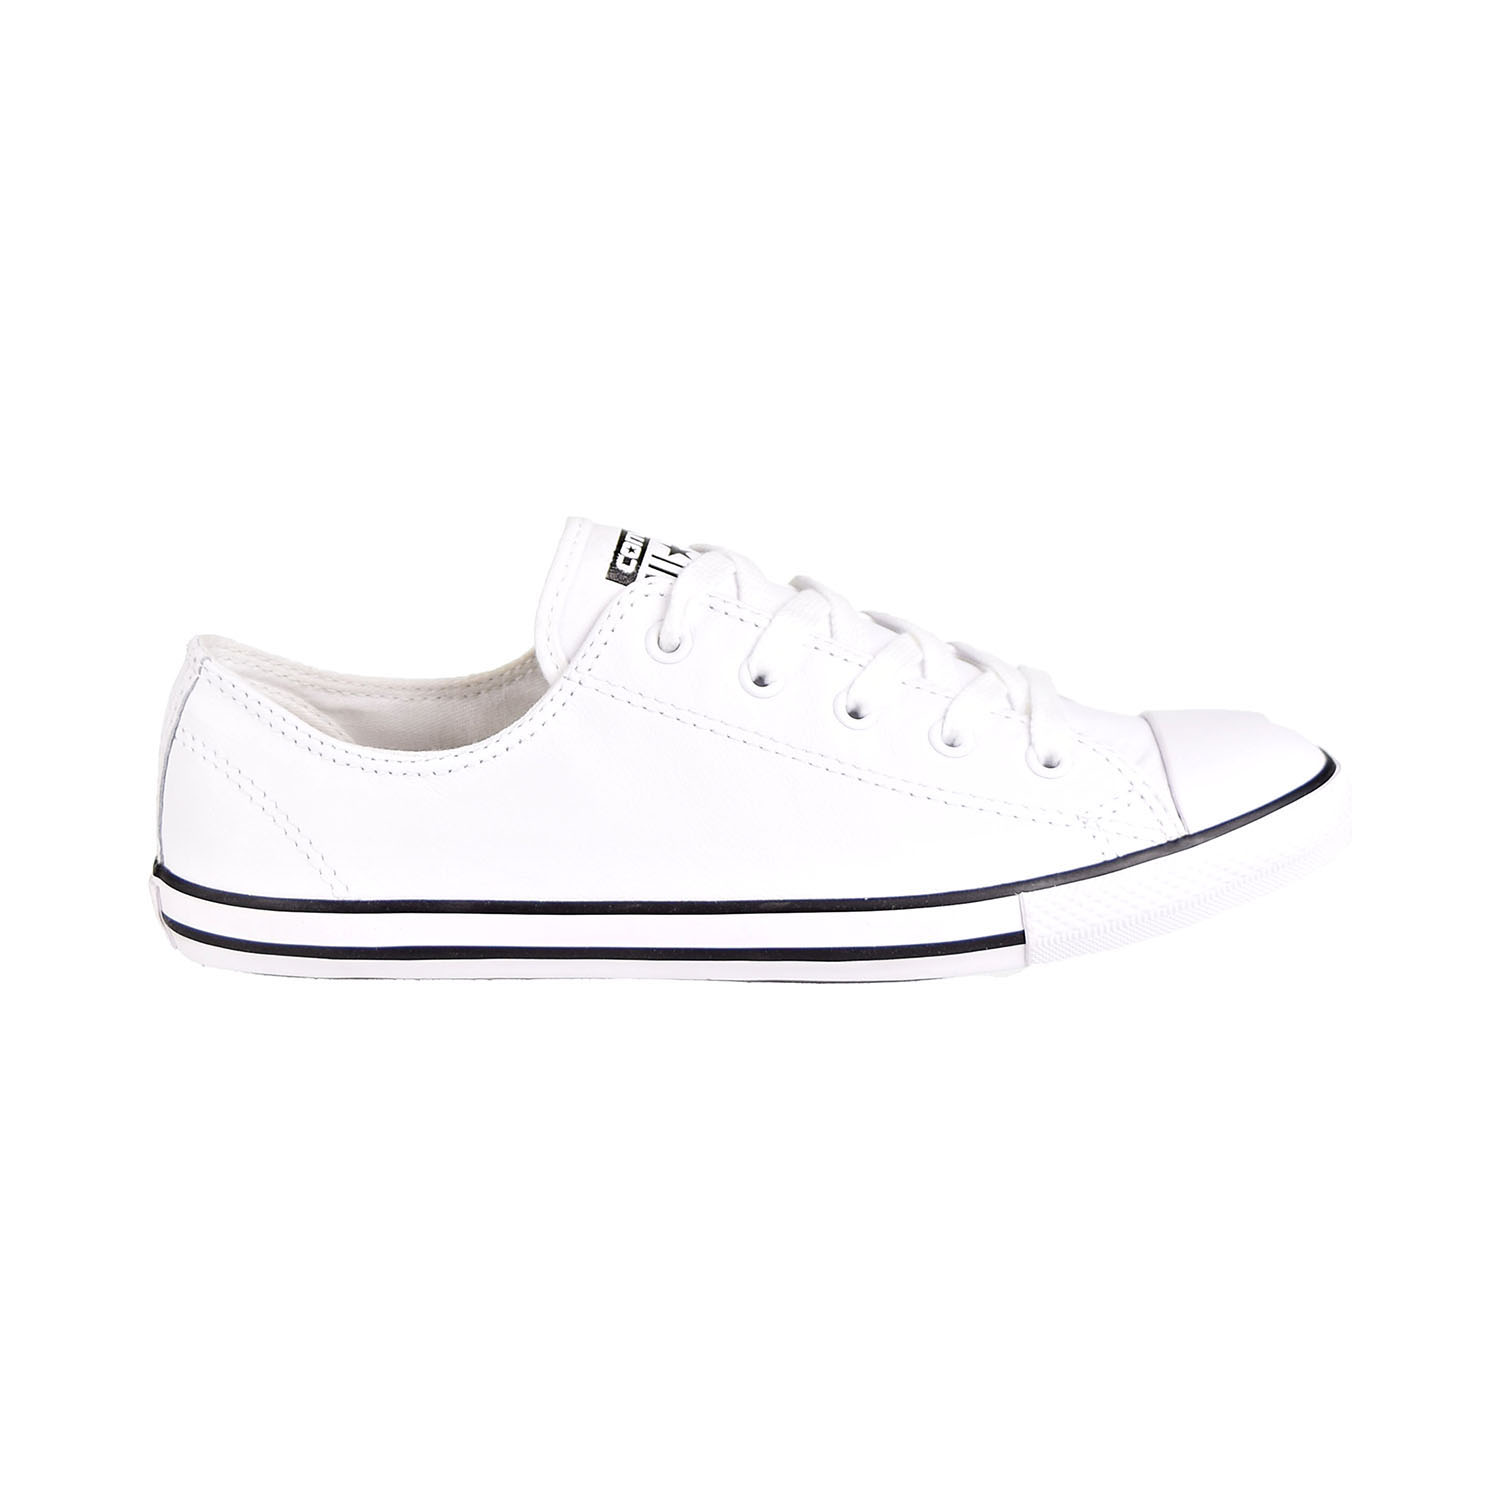 647da8cf66790 Details about Converse Chuck Taylor All Star Dainty Ox Women's Shoes White  537108C